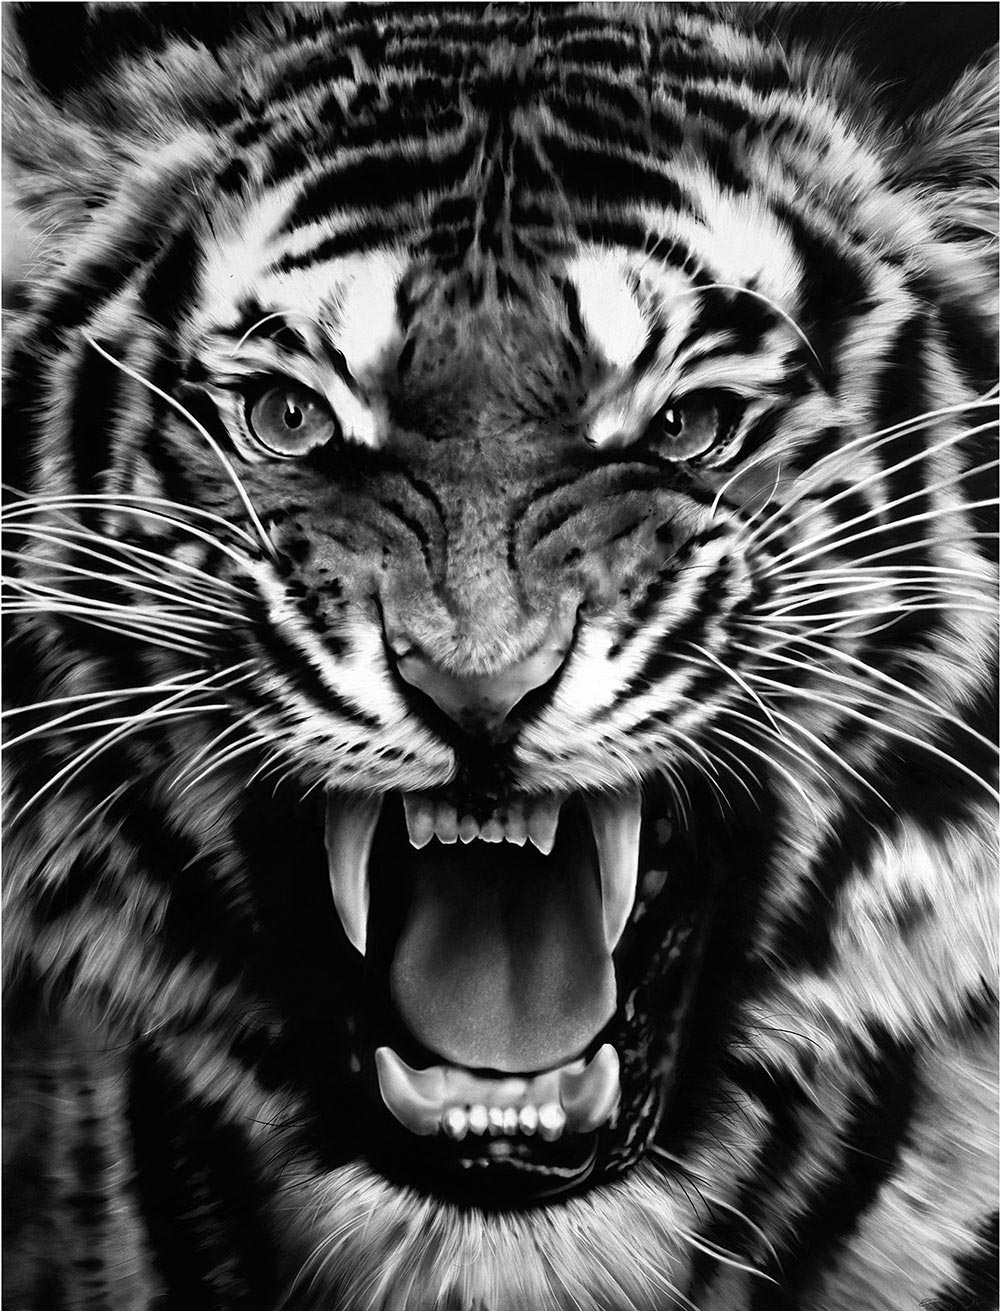 Robert Longo Untitled (Roaring Tiger)